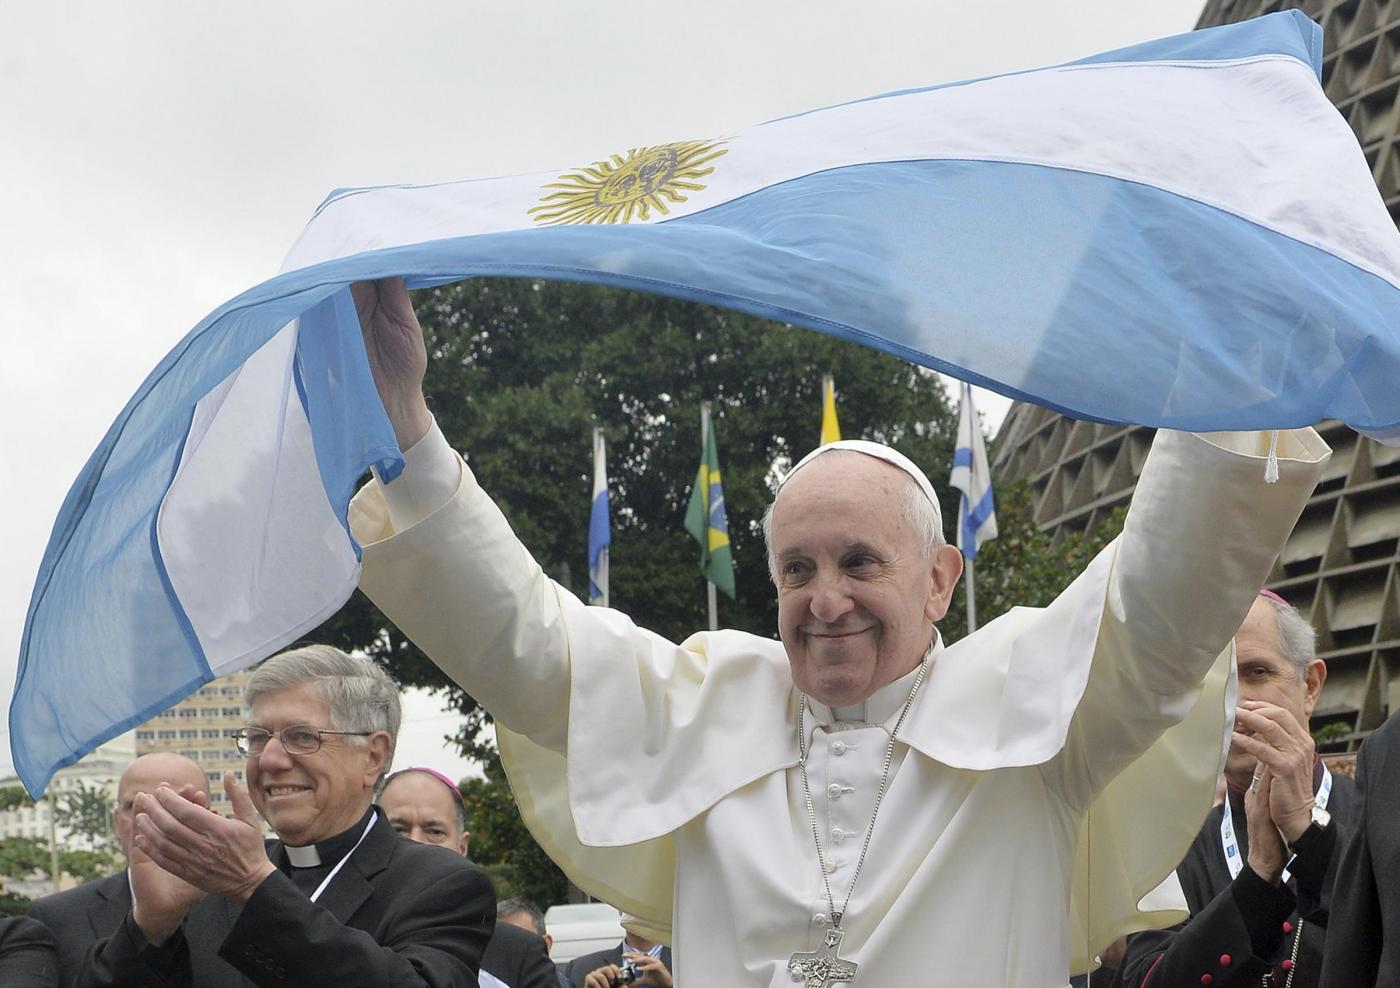 "Pope Francis holds up an Argentine flag outside the Metropolitan Cathedral in Rio de Janeiro, Brazil, July 25, 2013. Francis added a last-minute tweak to his busy schedule, meeting with pilgrims from his native Argentina at Rio's cathedral Thursday afternoon. He told the youngsters to get out into the streets and spread their faith, saying that a church that doesn't go out and preach becomes a simple NGO, or nongovernmental organization. ""And the church cannot be an NGO!"" he said to applause.  (AP Photo/Luca Zennaro, Pool)"